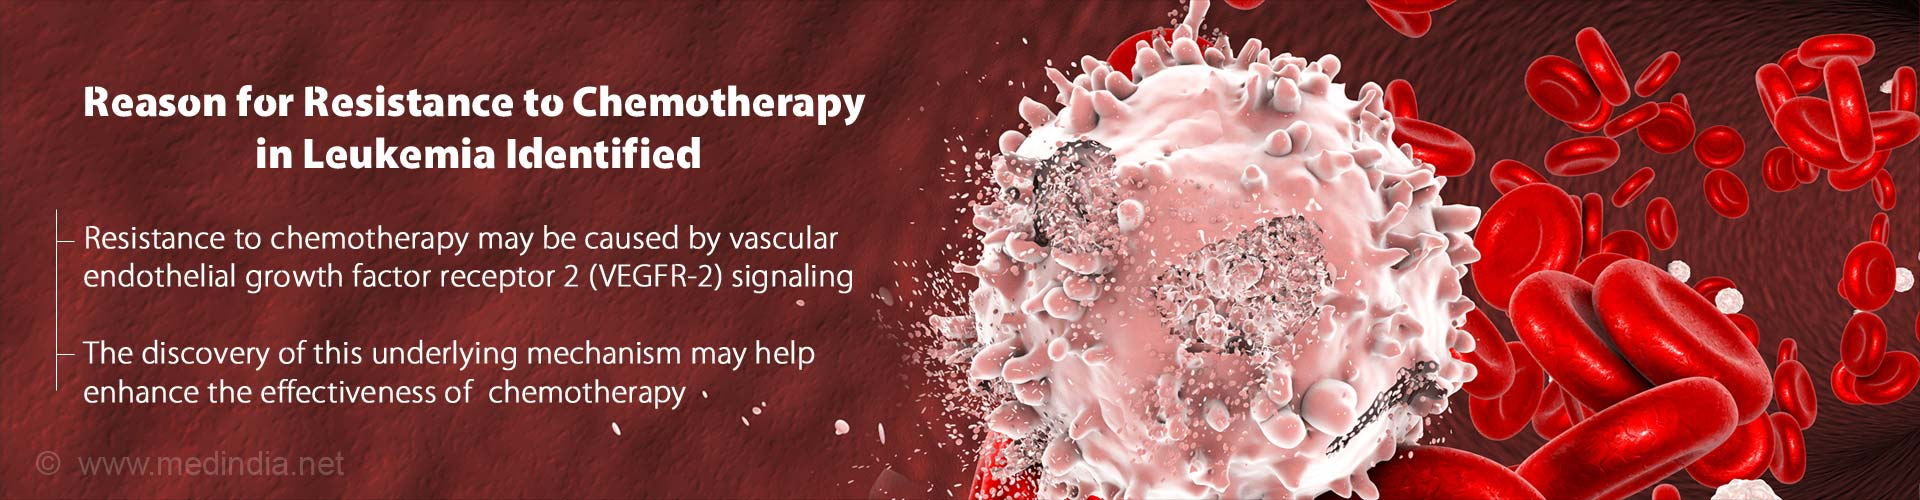 Reason for Resistance to Chemotherapy in Leukemia Identified